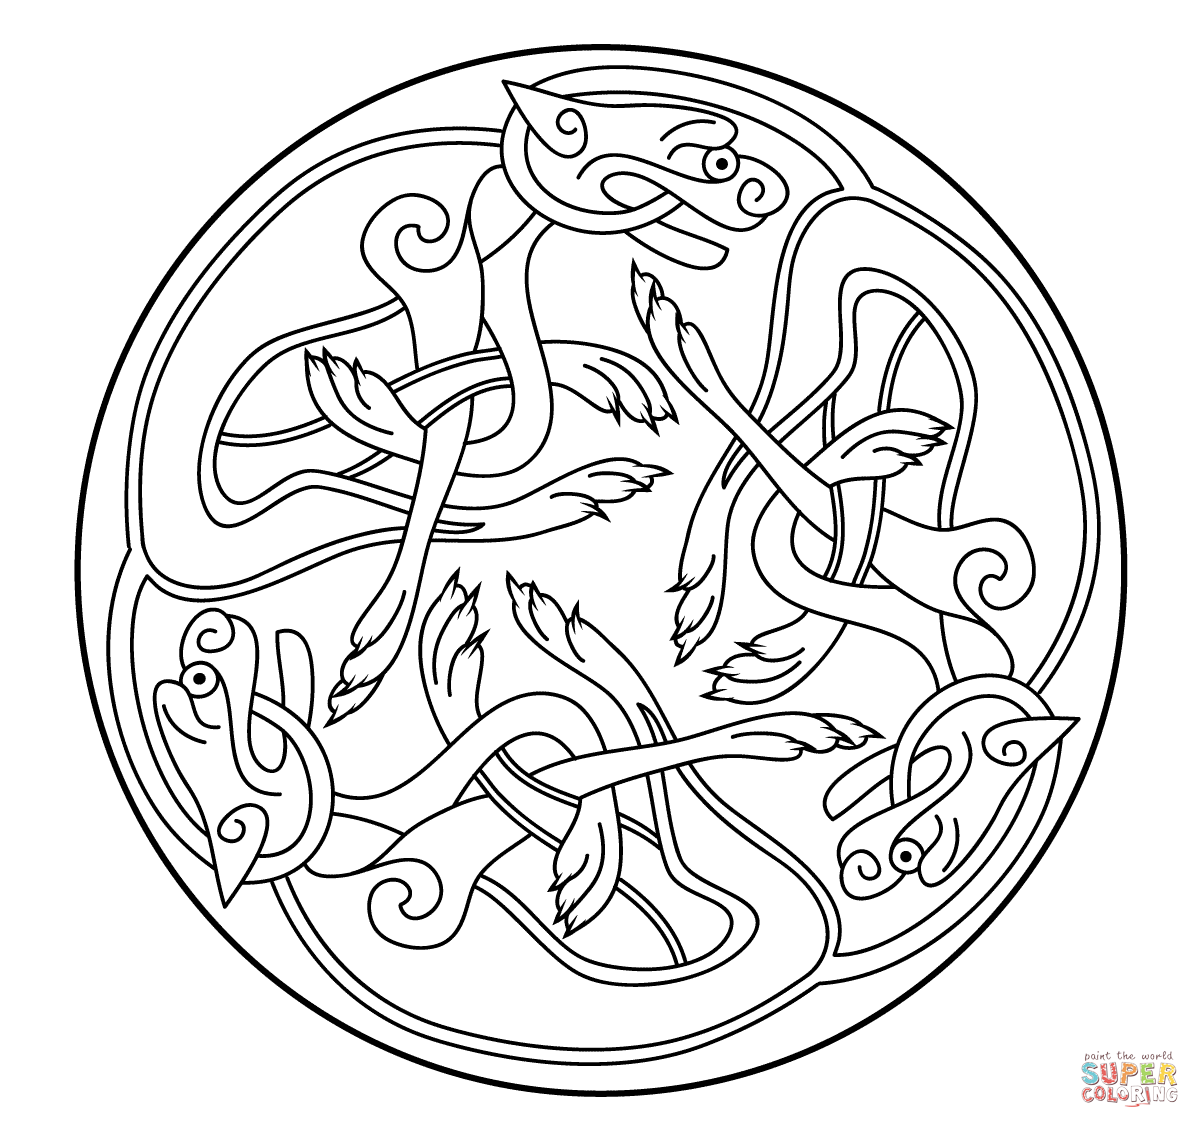 book of kells colouring pages free from the book of kells viking art free colouring kells book pages of